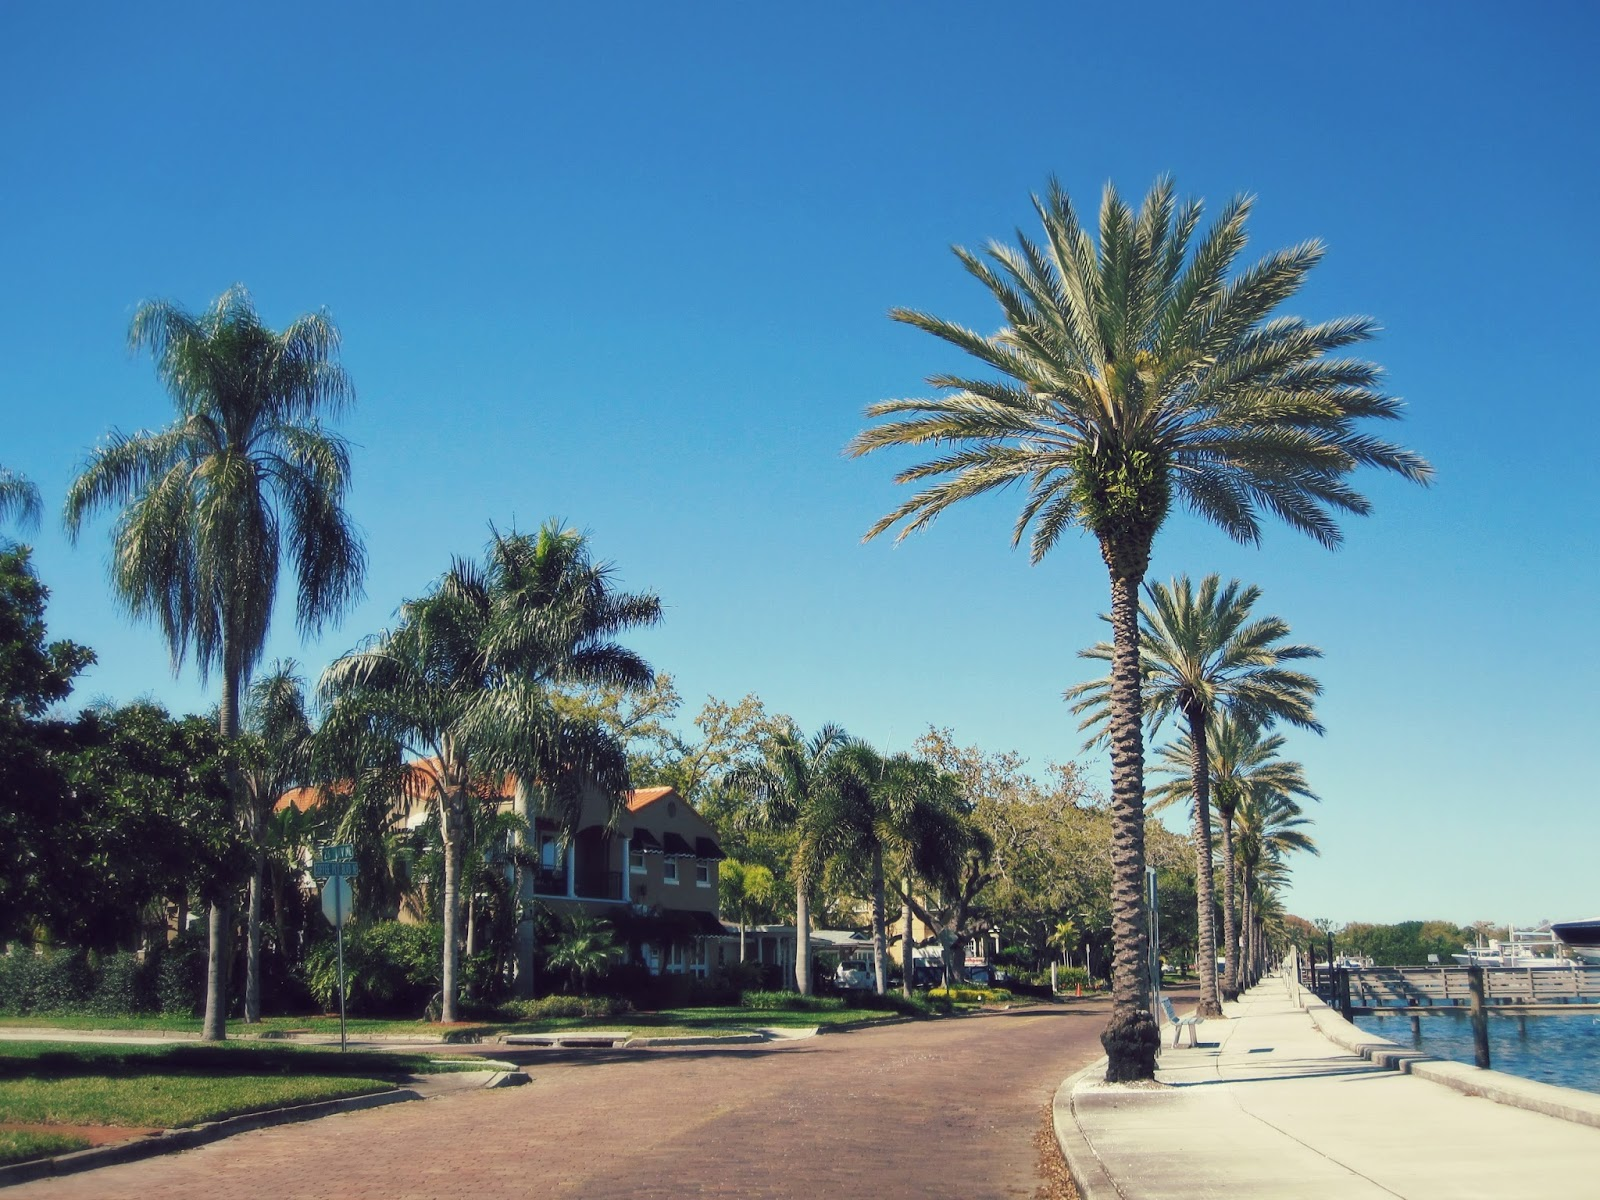 Spring Break In Florida, palm tree, florida palm trees, sorrow, grief